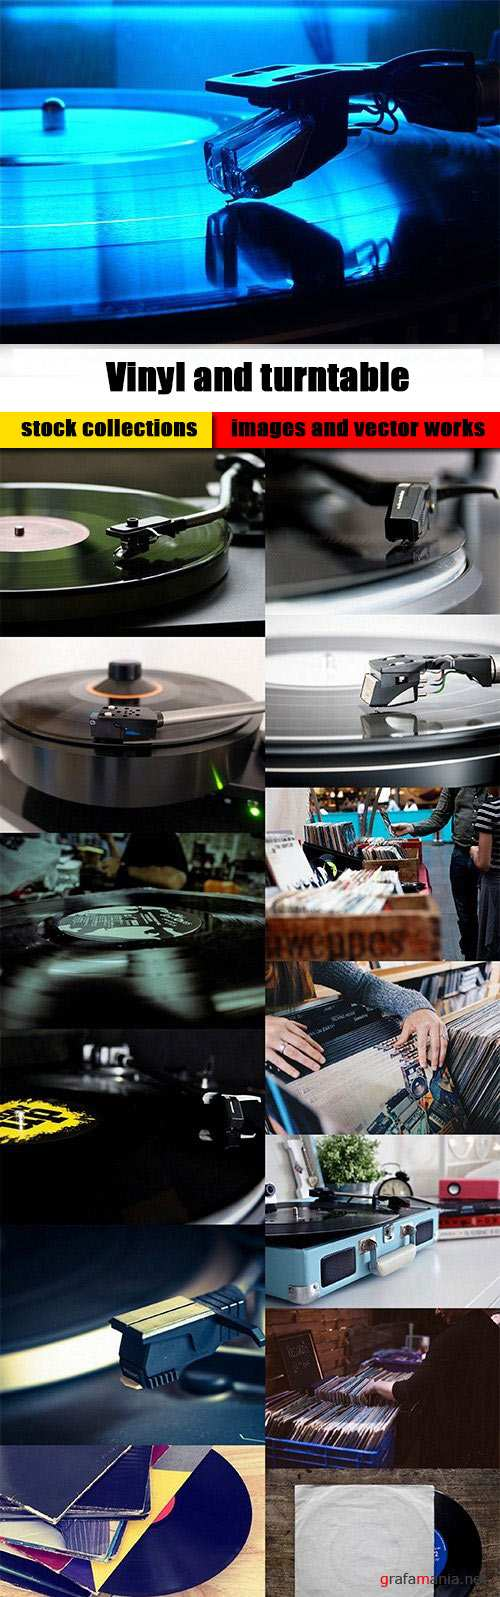 Vinyl and turntable